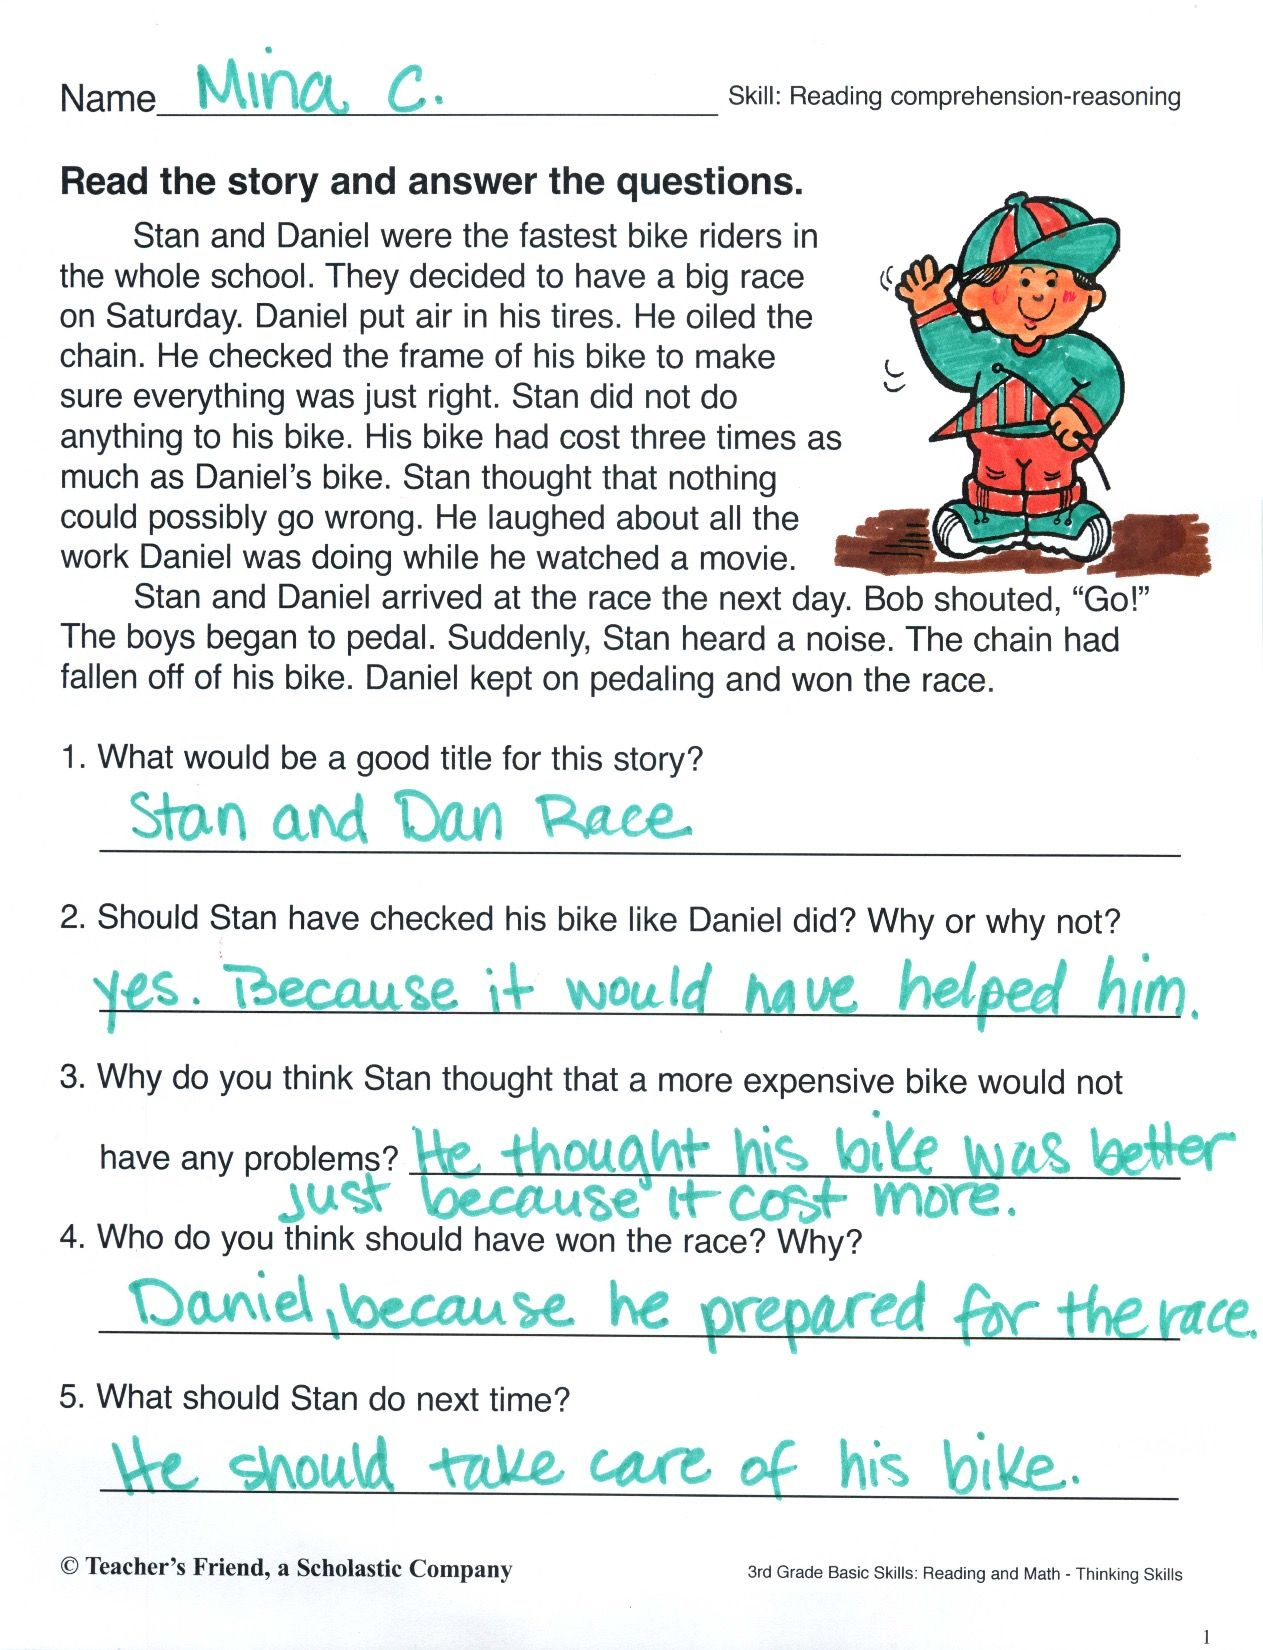 Practice Reading A Short Story And Answering Comprehension